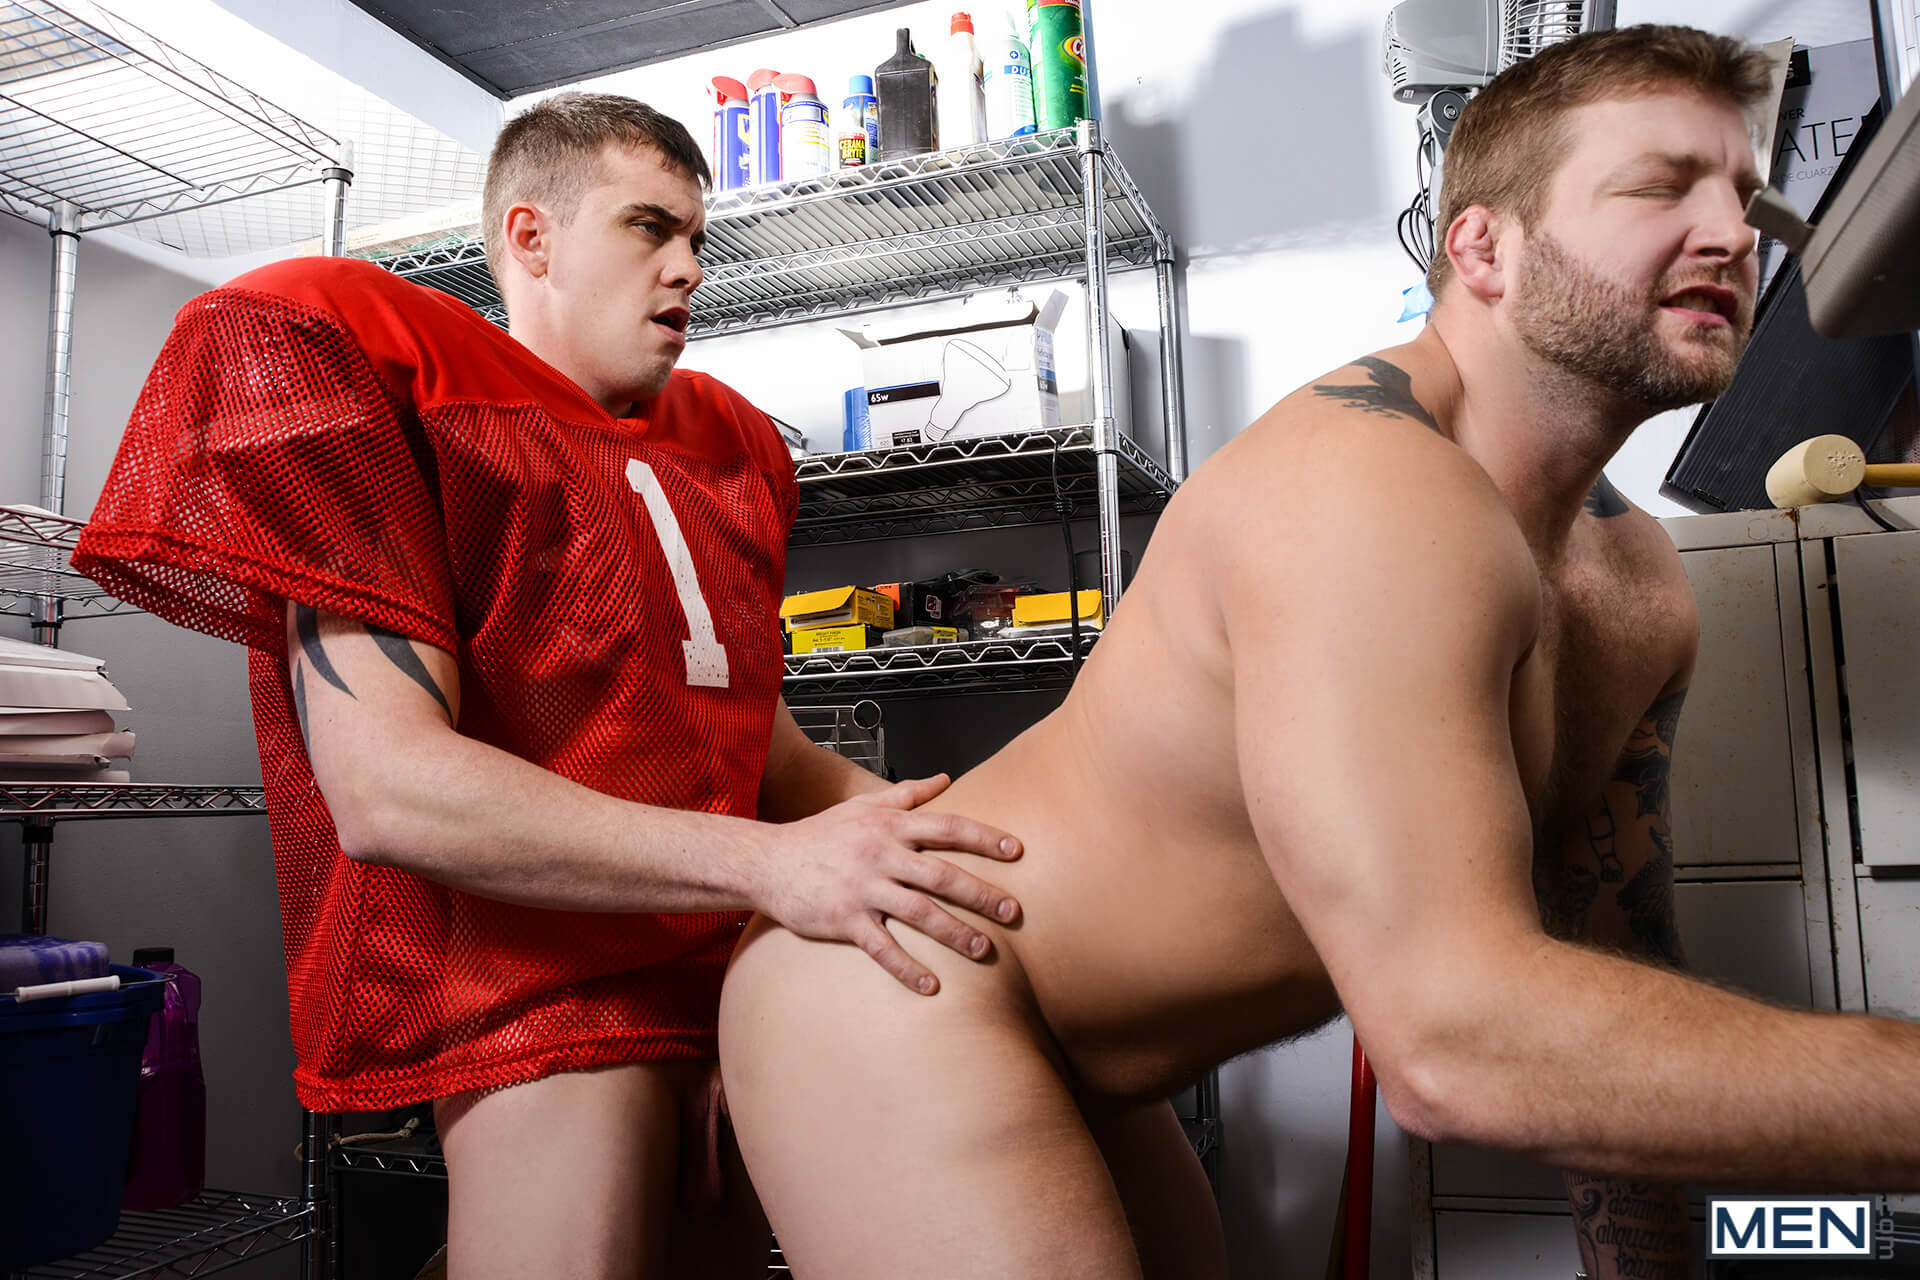 men big dicks at school janitors closet part 3 colby jansen darin silvers gay porn blog image 16